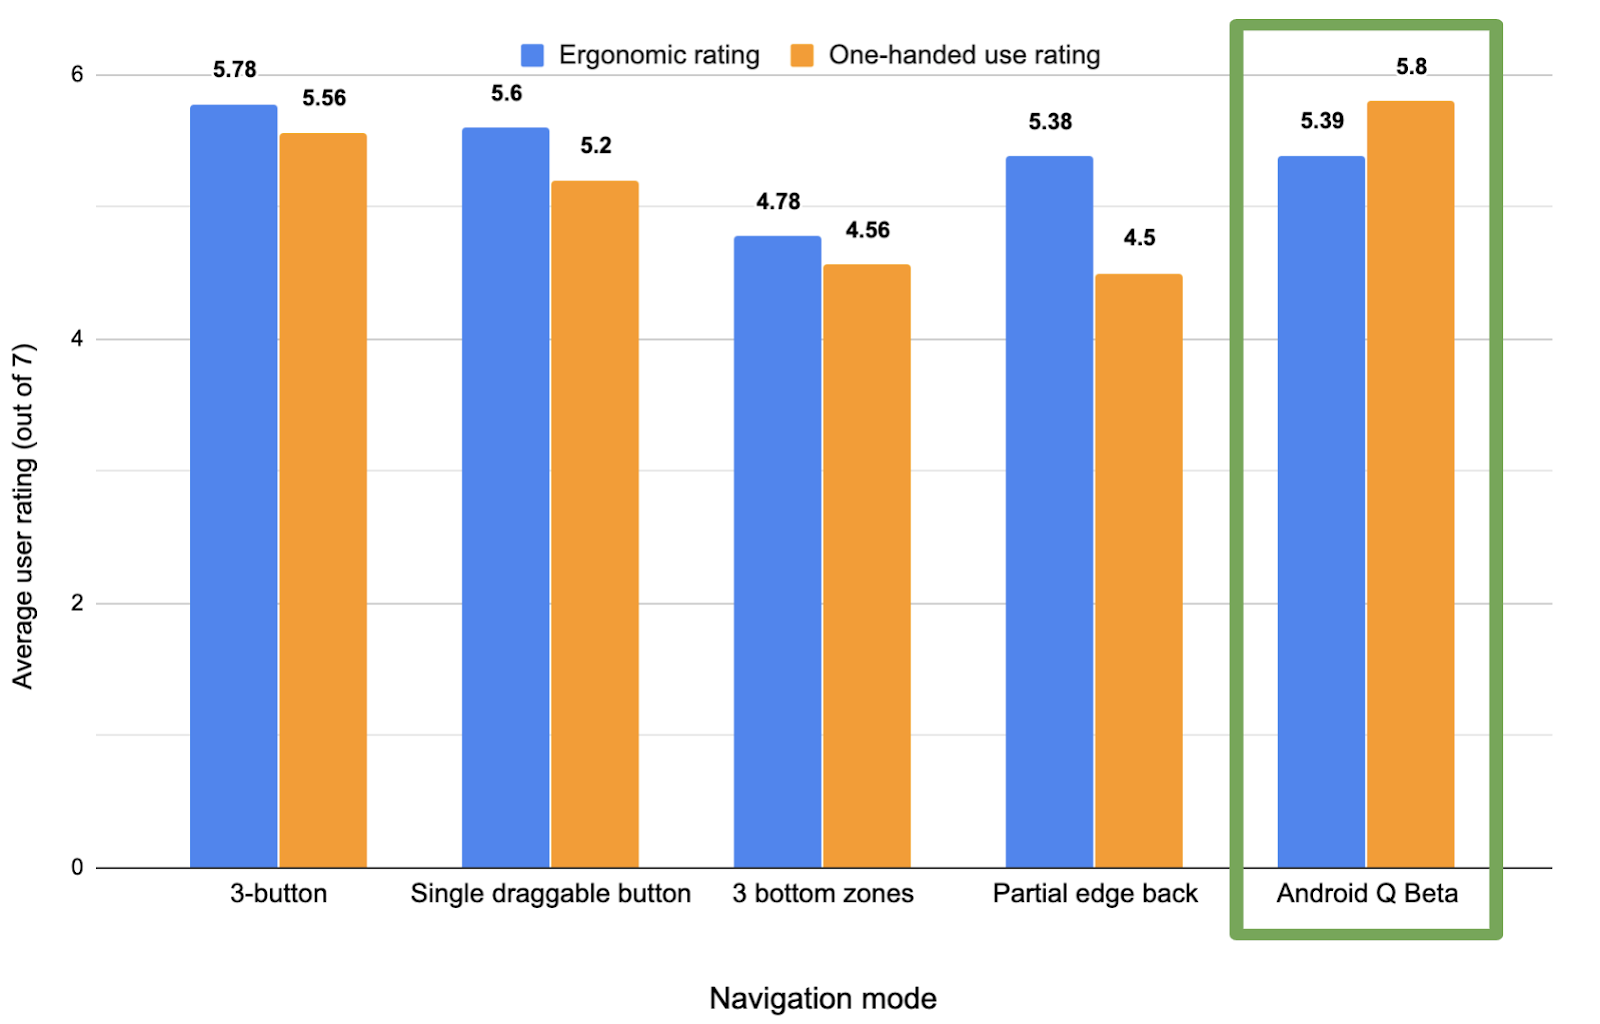 Comparison of user ratings for ergonomics and one-handed use across different navigation modes (higher is better)